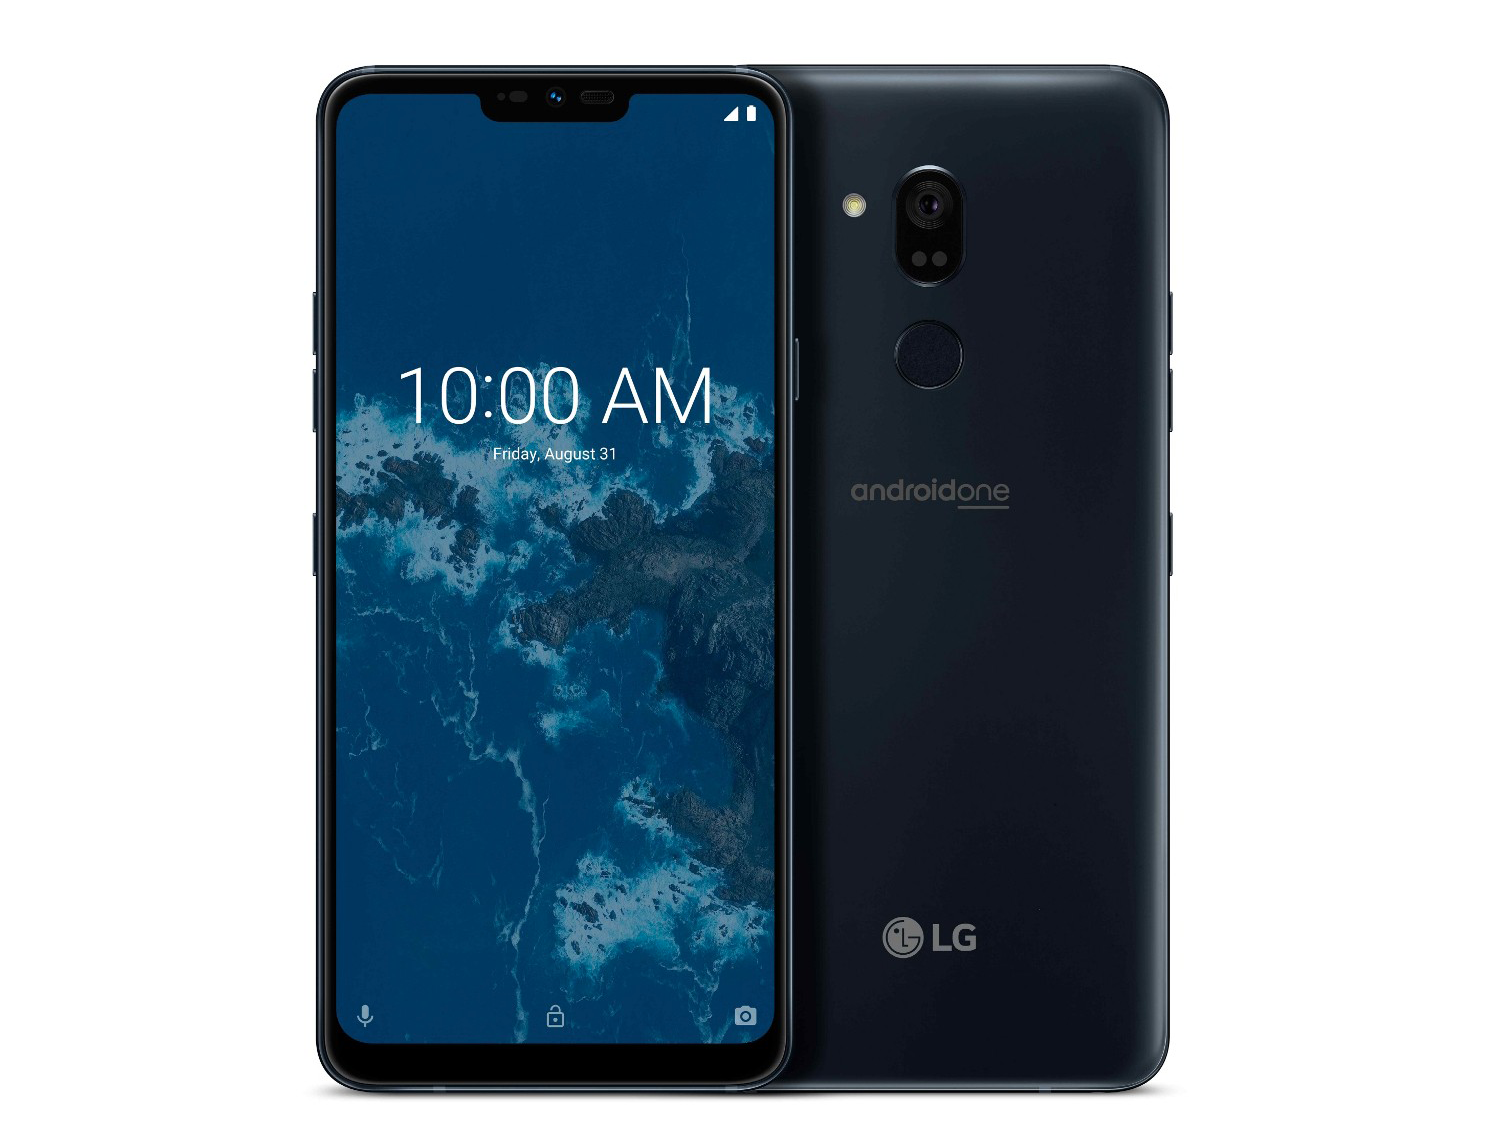 LG G7 One Android One Smartphone With Snapdragon 835 SoC Goes Official